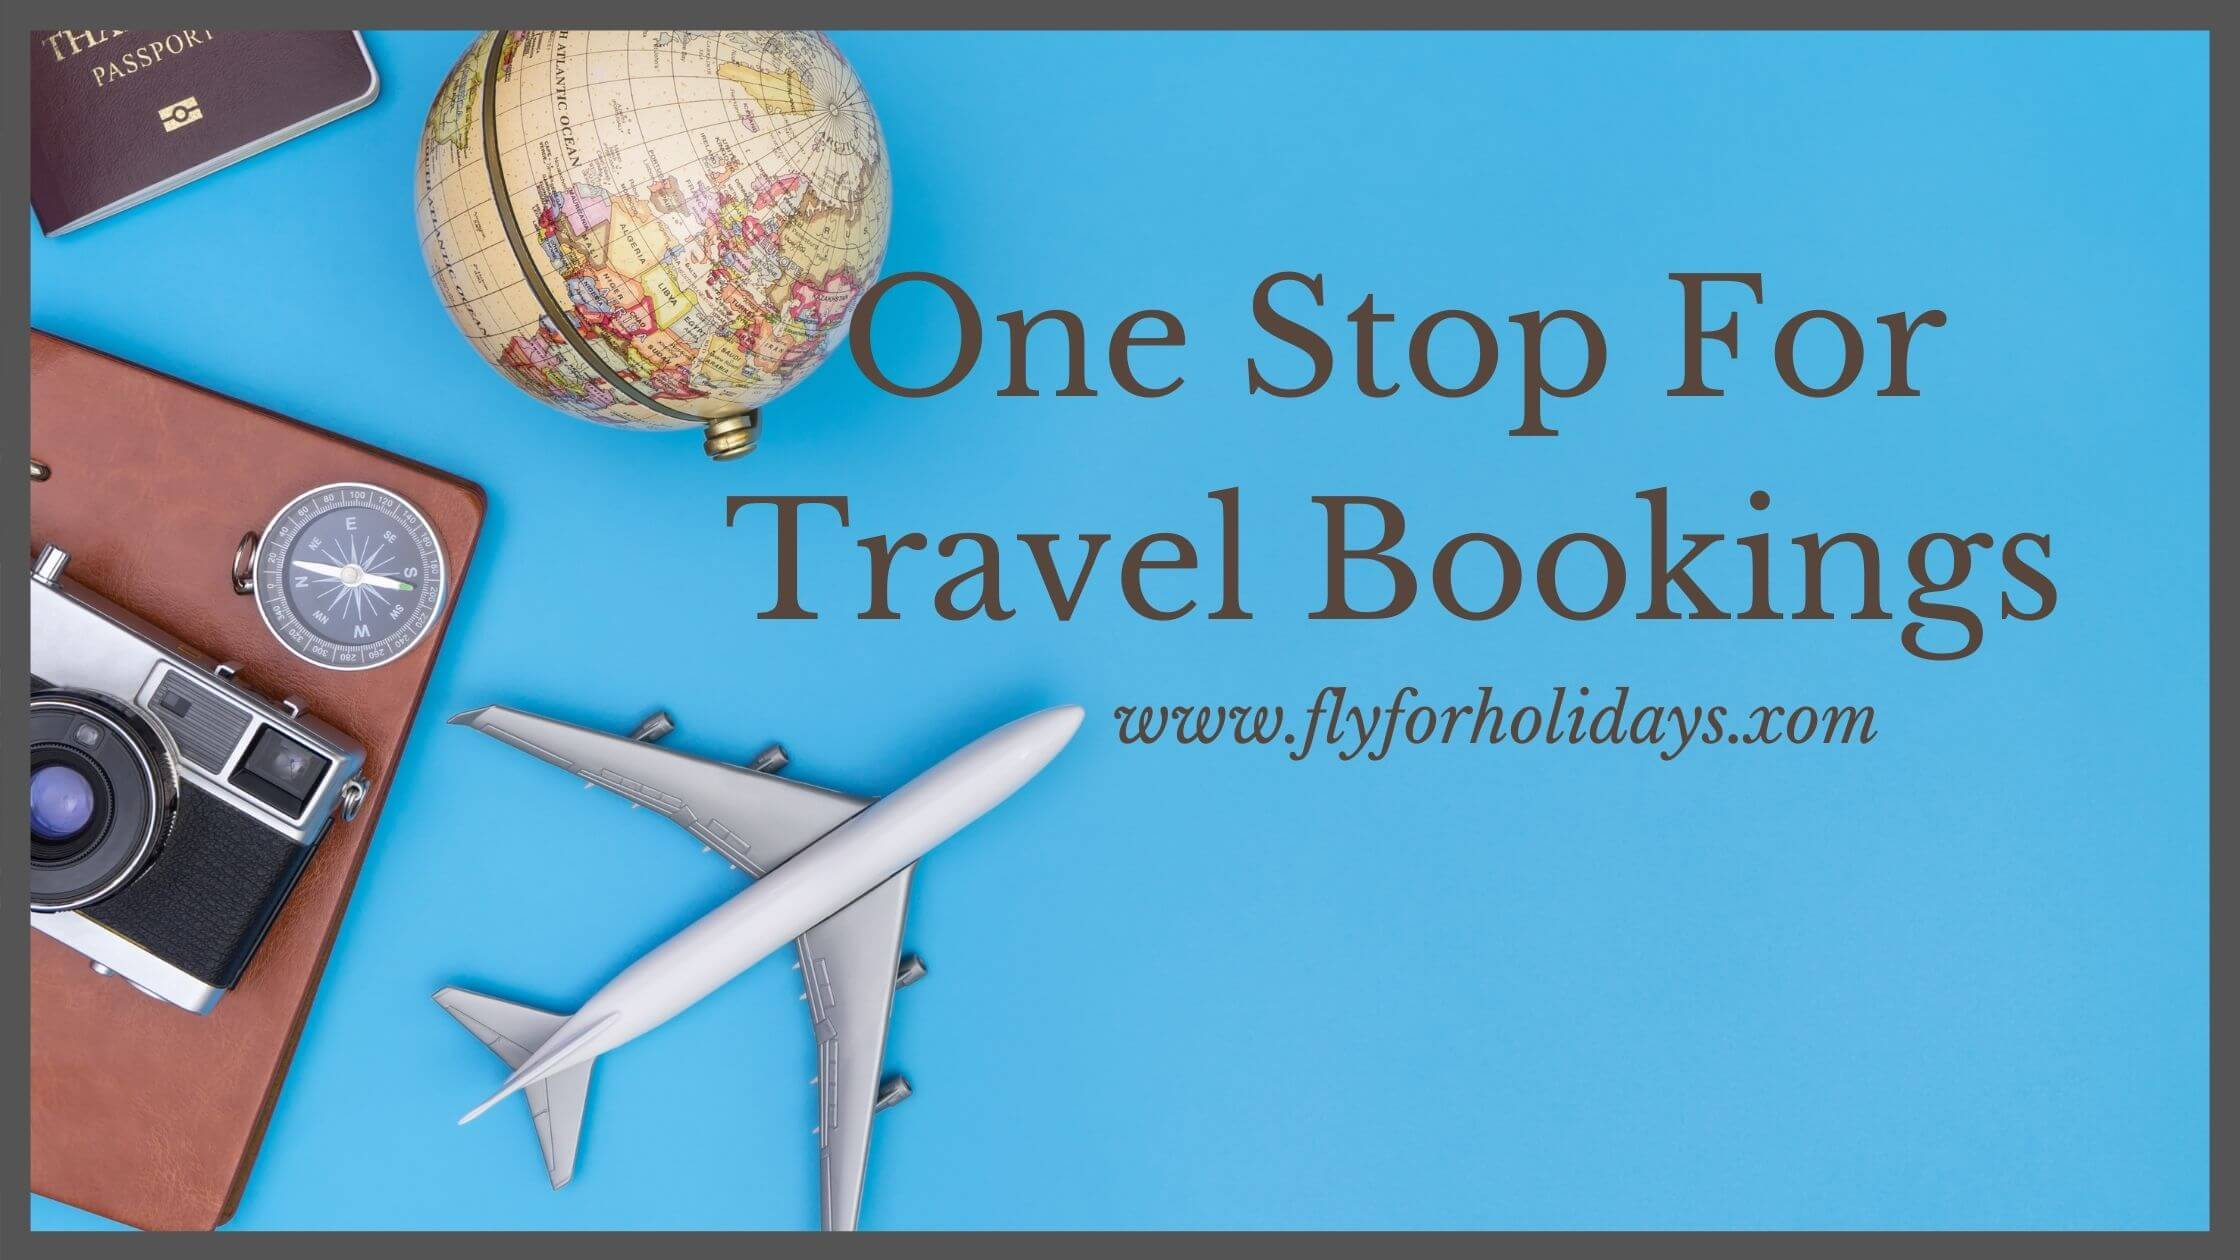 One Stop for Travel Bookings - Fly For Holidays